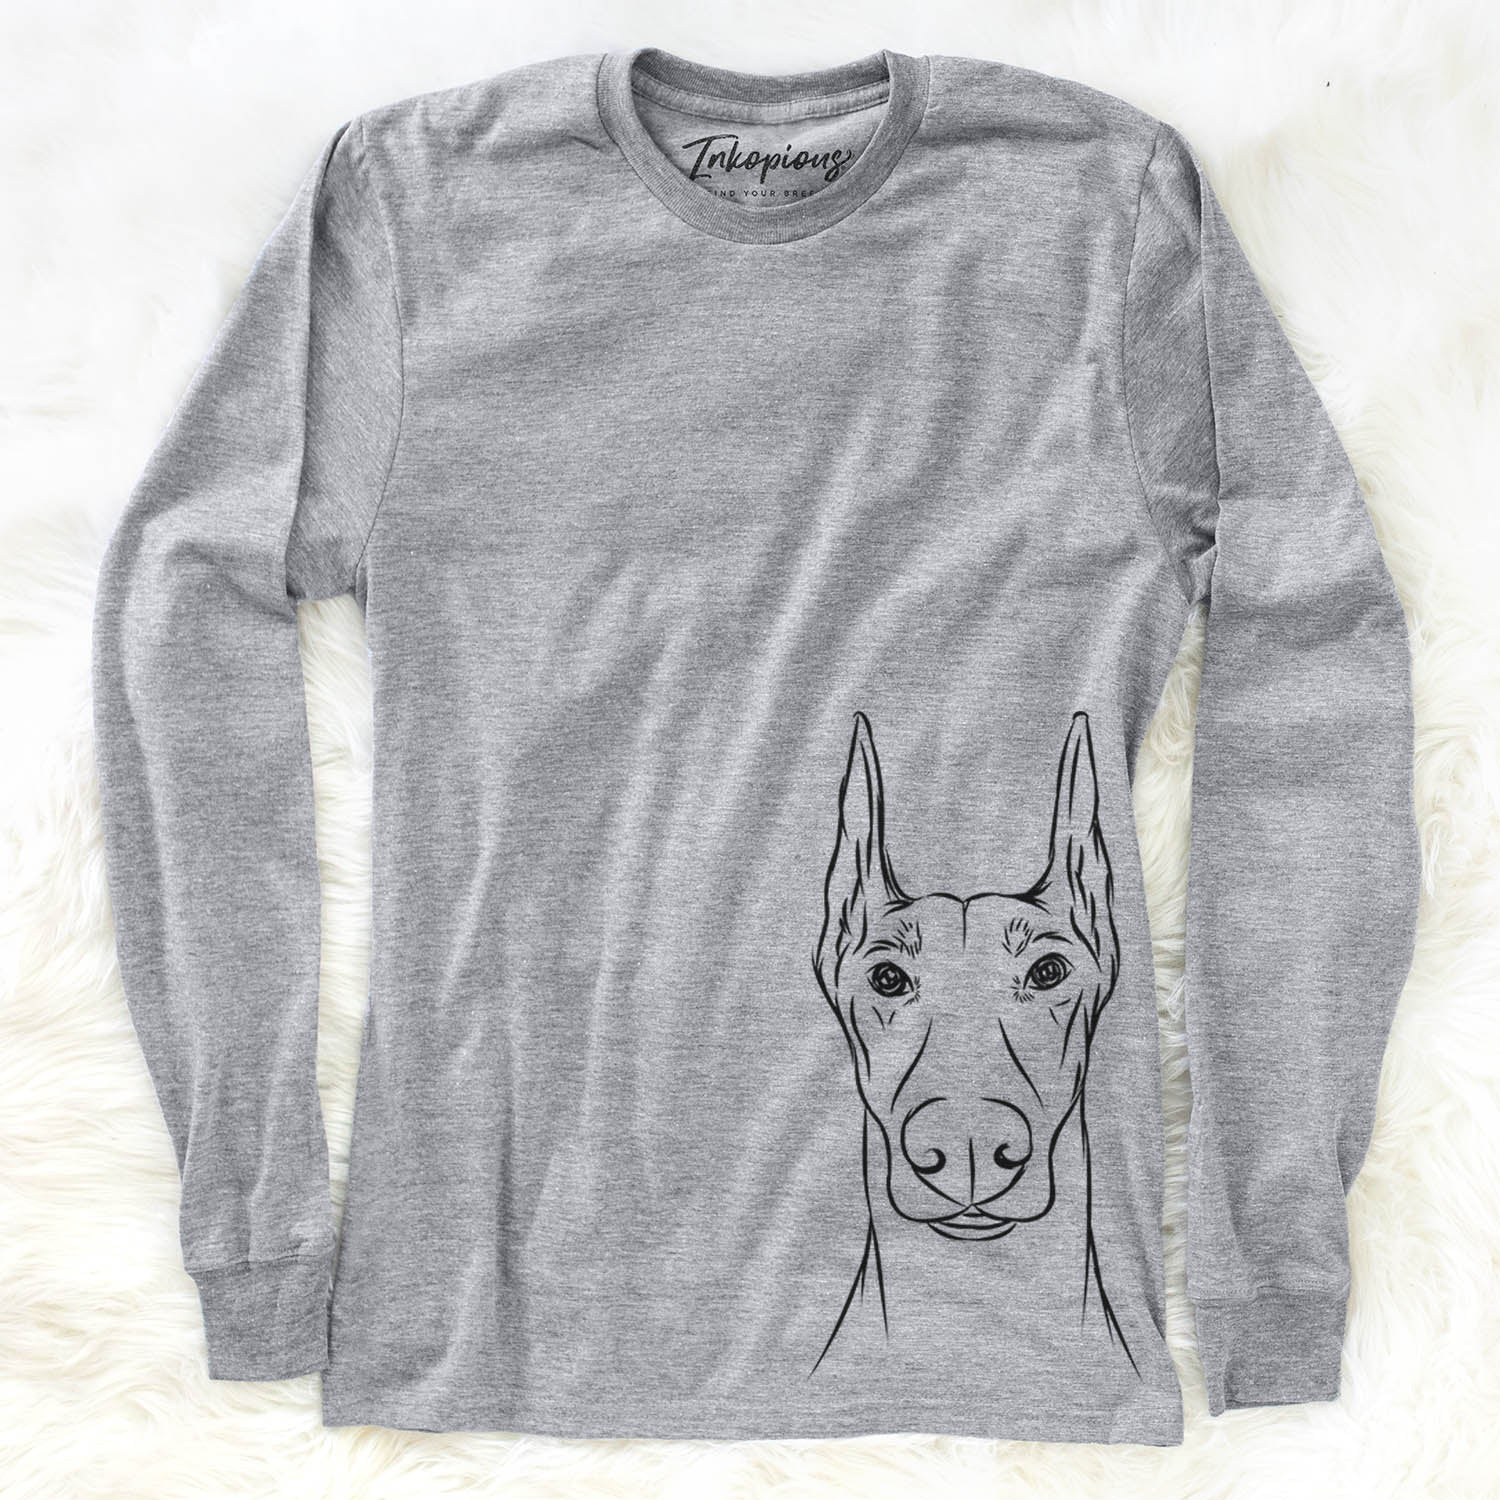 Duke the Doberman Pinscher - Long Sleeve Crewneck